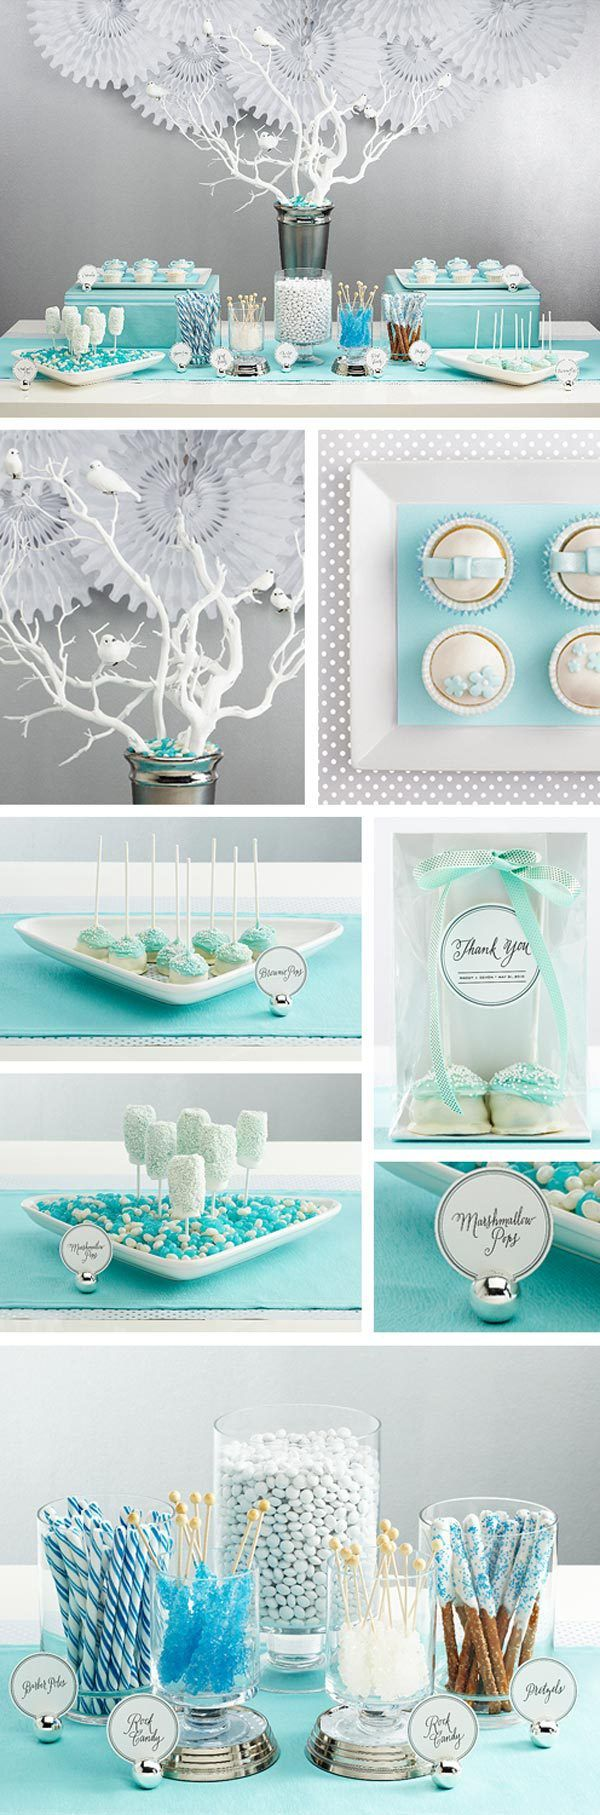 Baby Shower Ideas For Boys | Baby Shower | Decor Ideas | Arhitektura+